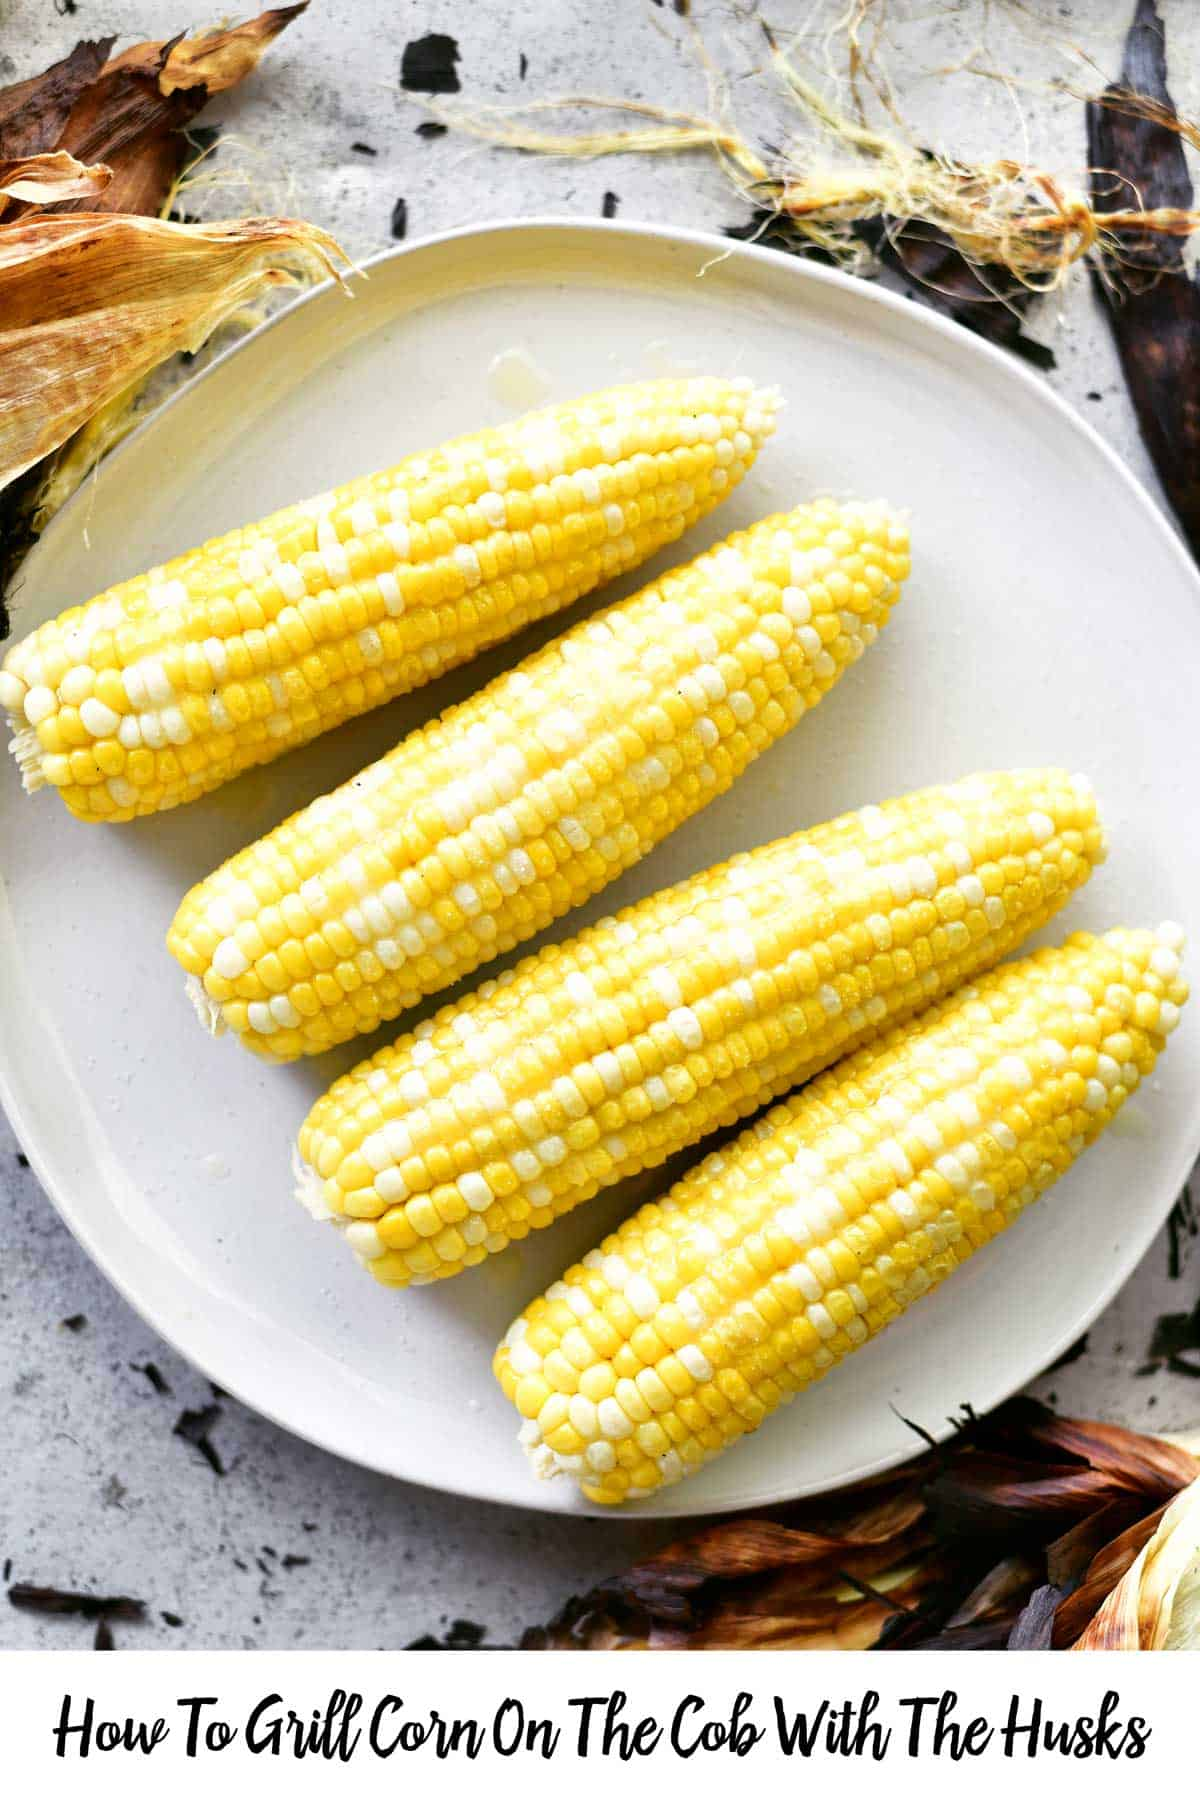 recipe for how to grill corn on the cob with the husks